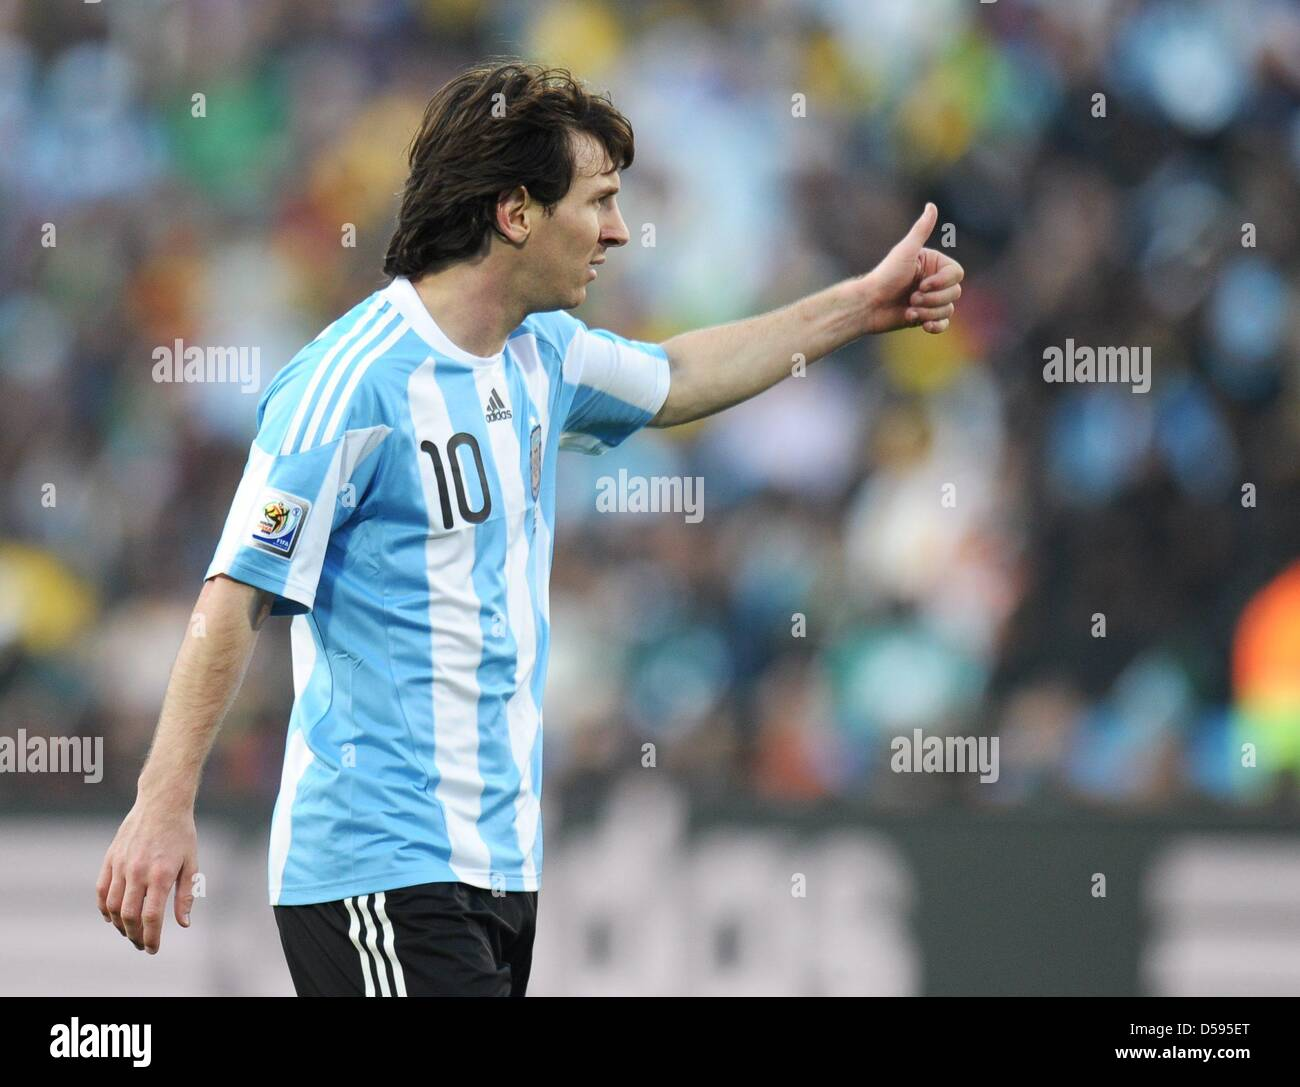 5e5b027e6 Lionel Messi of Argentina gestures during the FIFA World Cup group B soccer  match between Argentina and Nigeria at Ellis Park Stadium in Johannesburg